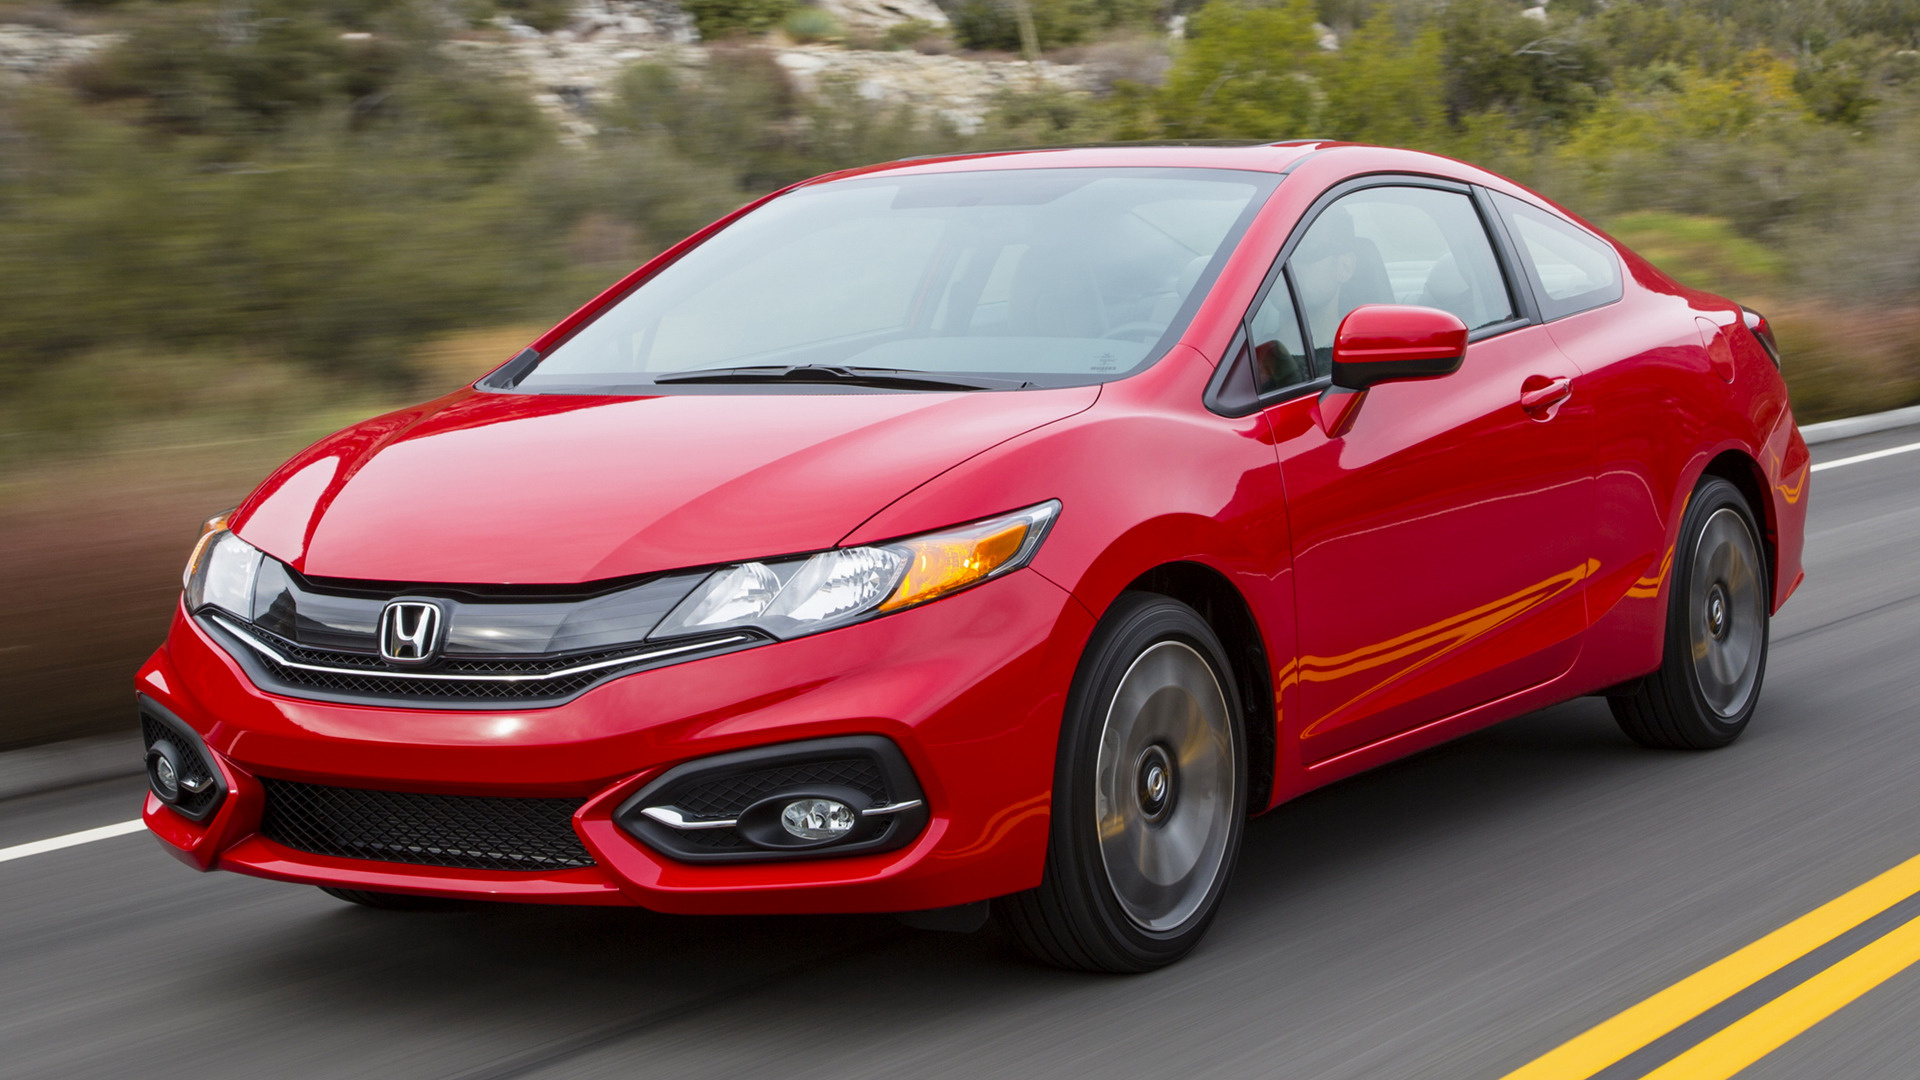 Honda Civic Coupe (2014) Wallpapers and HD Images - Car Pixel